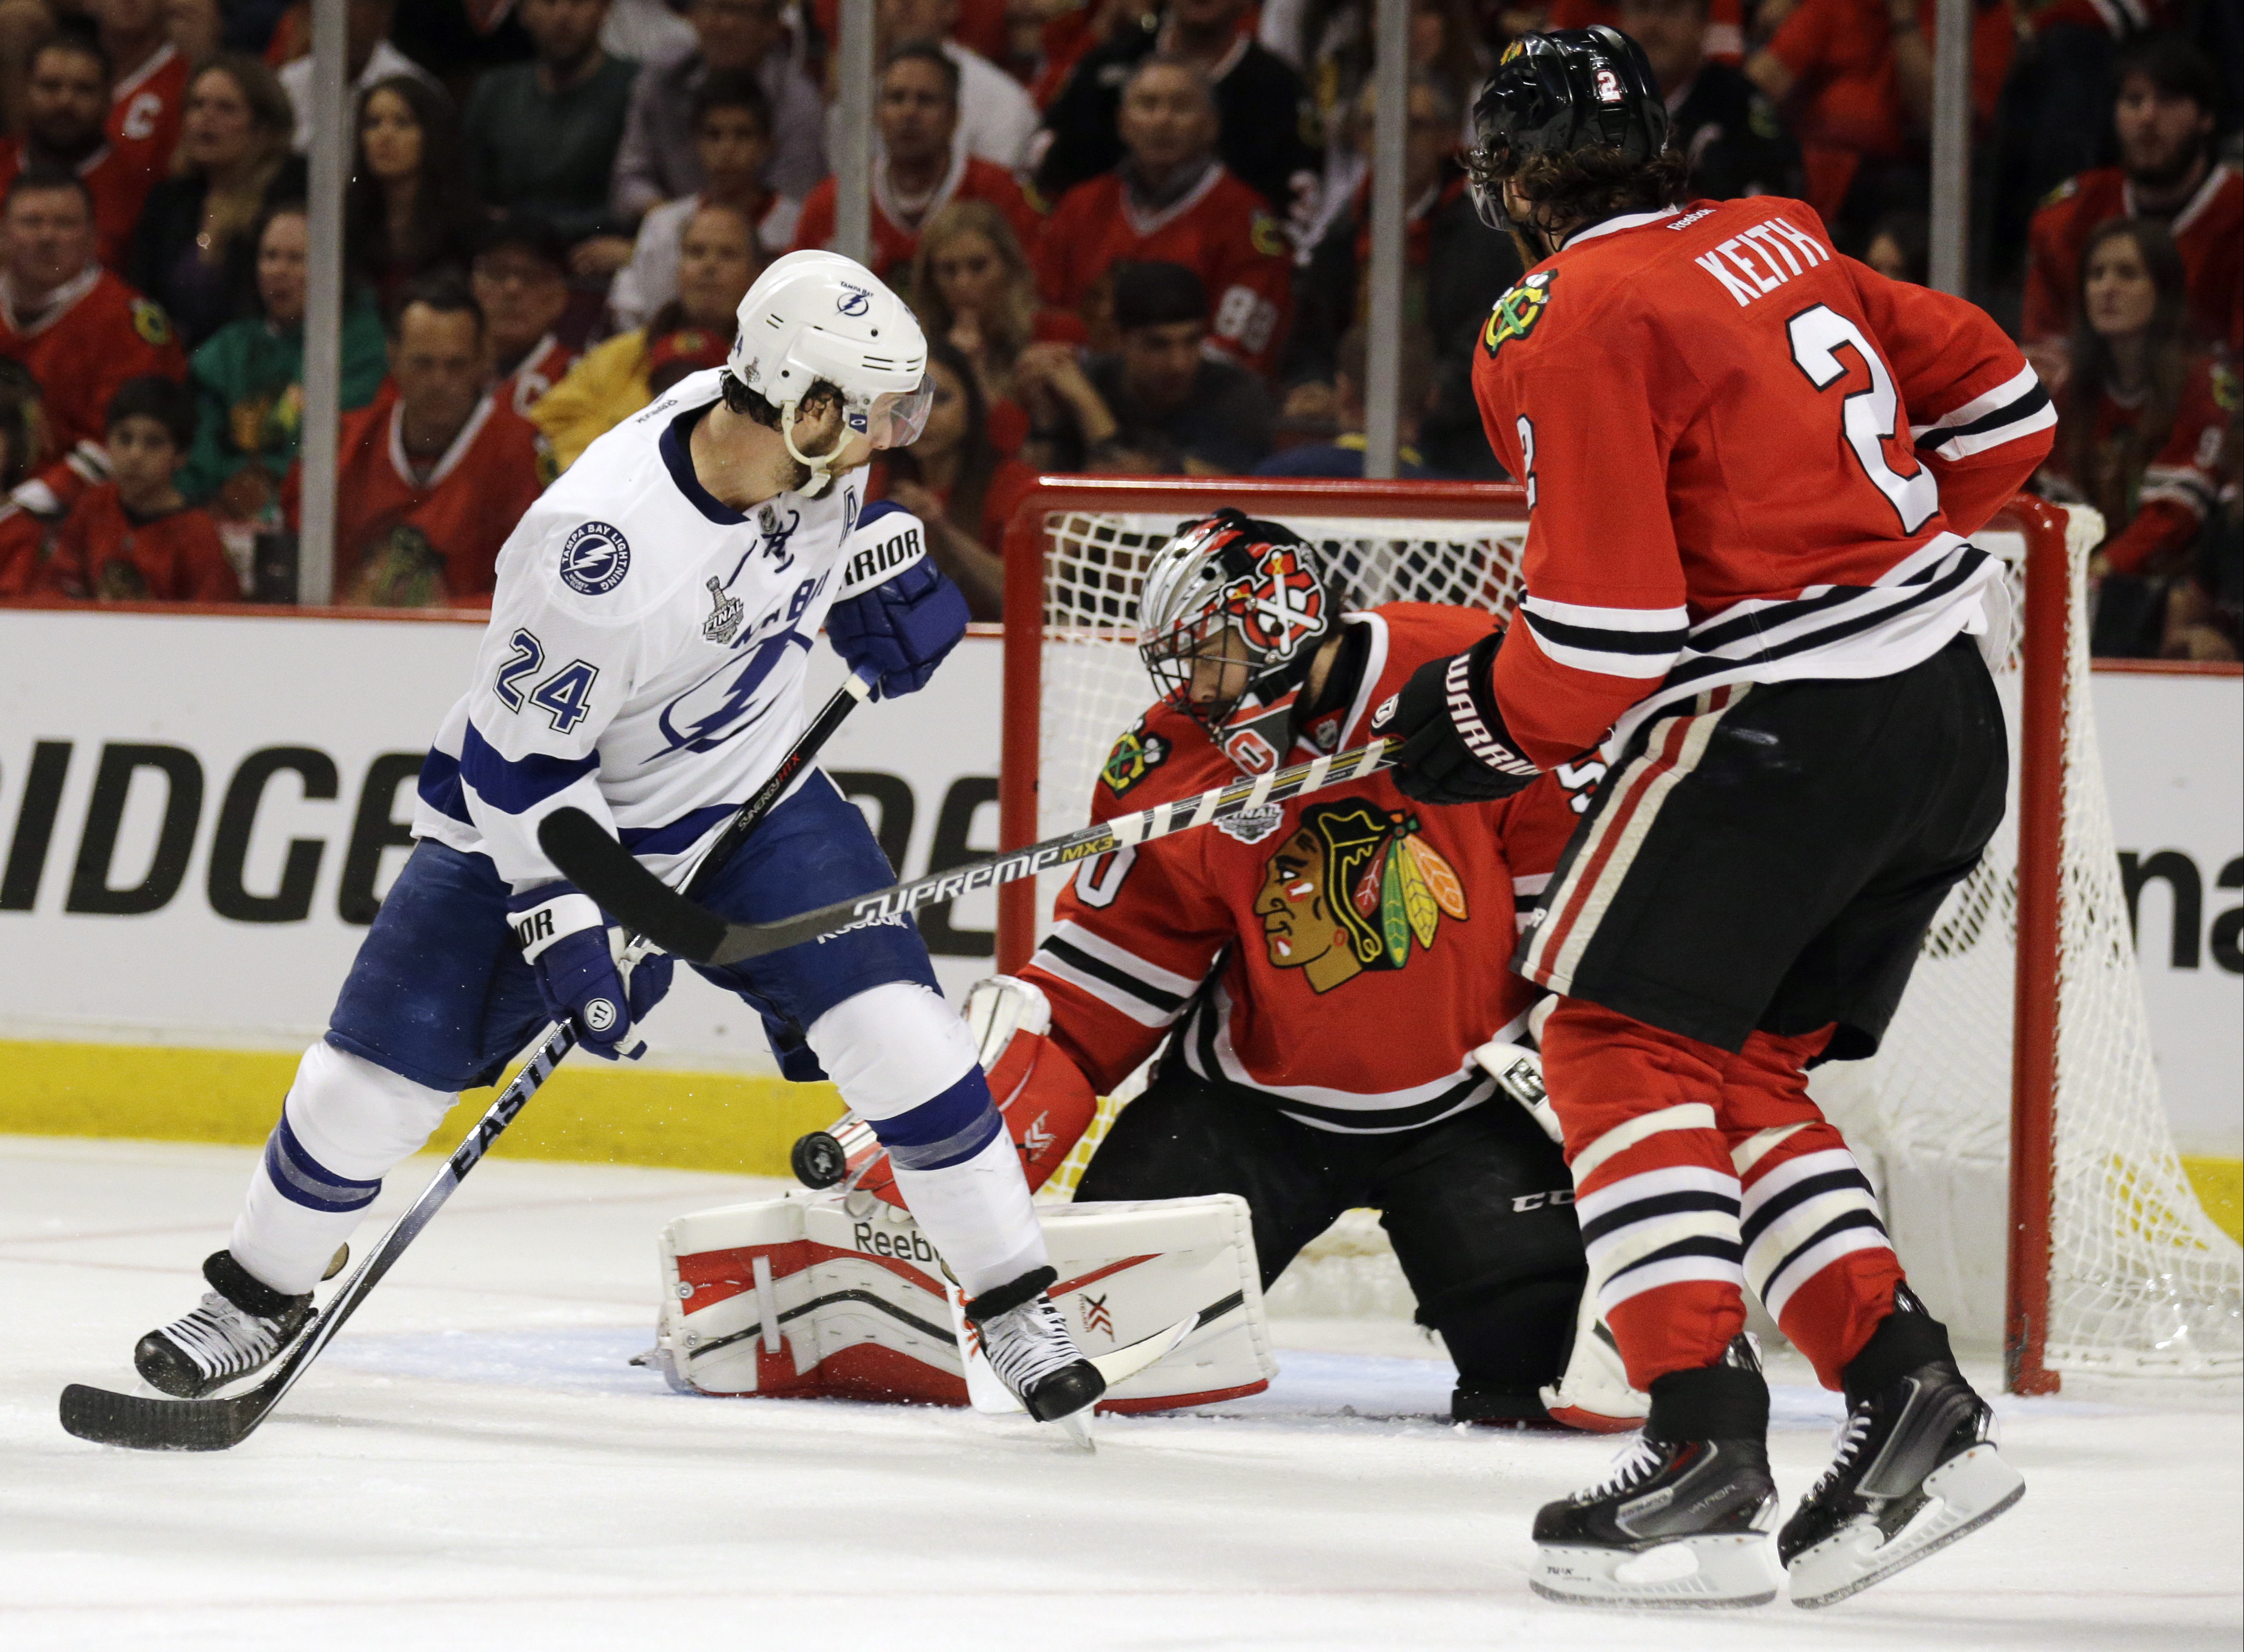 Chicago Blackhawks goalie Corey Crawford, center, keeps his eye on the puck as teammate Duncan Keith, right, and Tampa Bay Lightning's Ryan Callahan, left, watch during the first period in Game 4 of the NHL hockey Stanley Cup Final Wednesday, June 10, 201